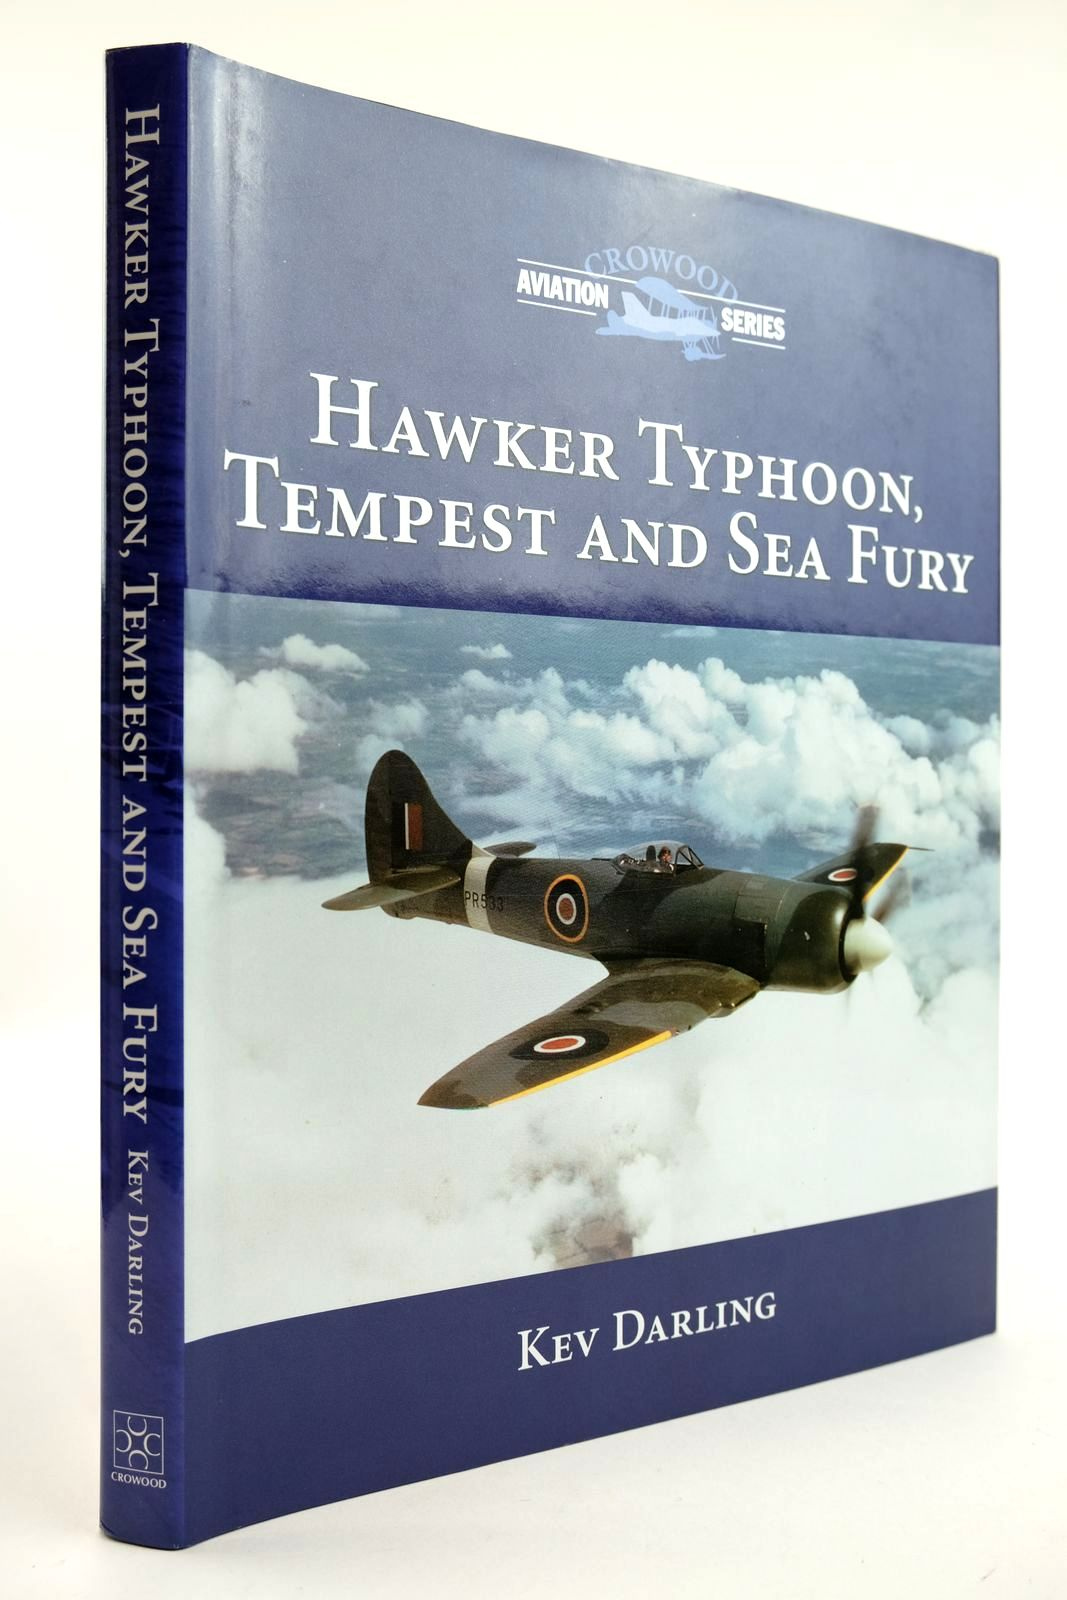 Photo of HAWKER TYPHOON, TEMPEST AND SEA FURY (CROWOOD AVIATION SERIES) written by Darling, Kev published by The Crowood Press (STOCK CODE: 2132094)  for sale by Stella & Rose's Books